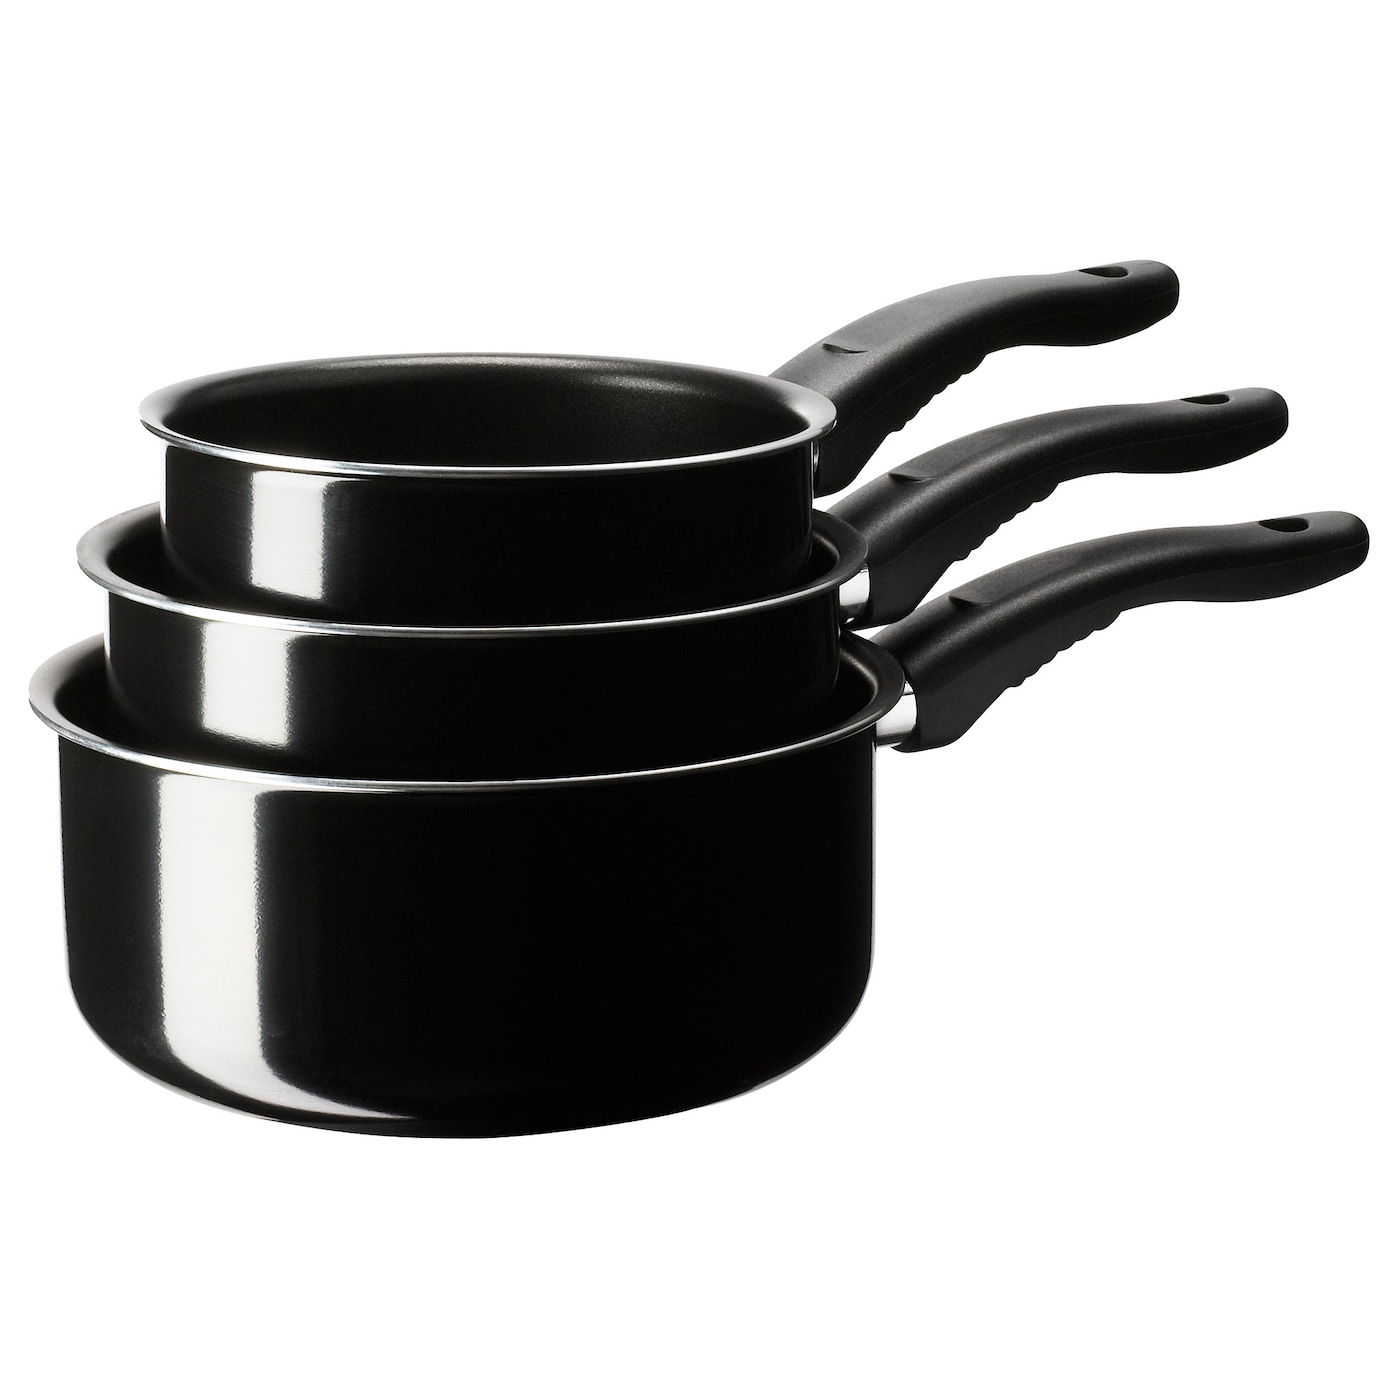 IKEA KAVALKAD saucepan, set of 3 The pan's low weight makes it easy to handle when filled with food.